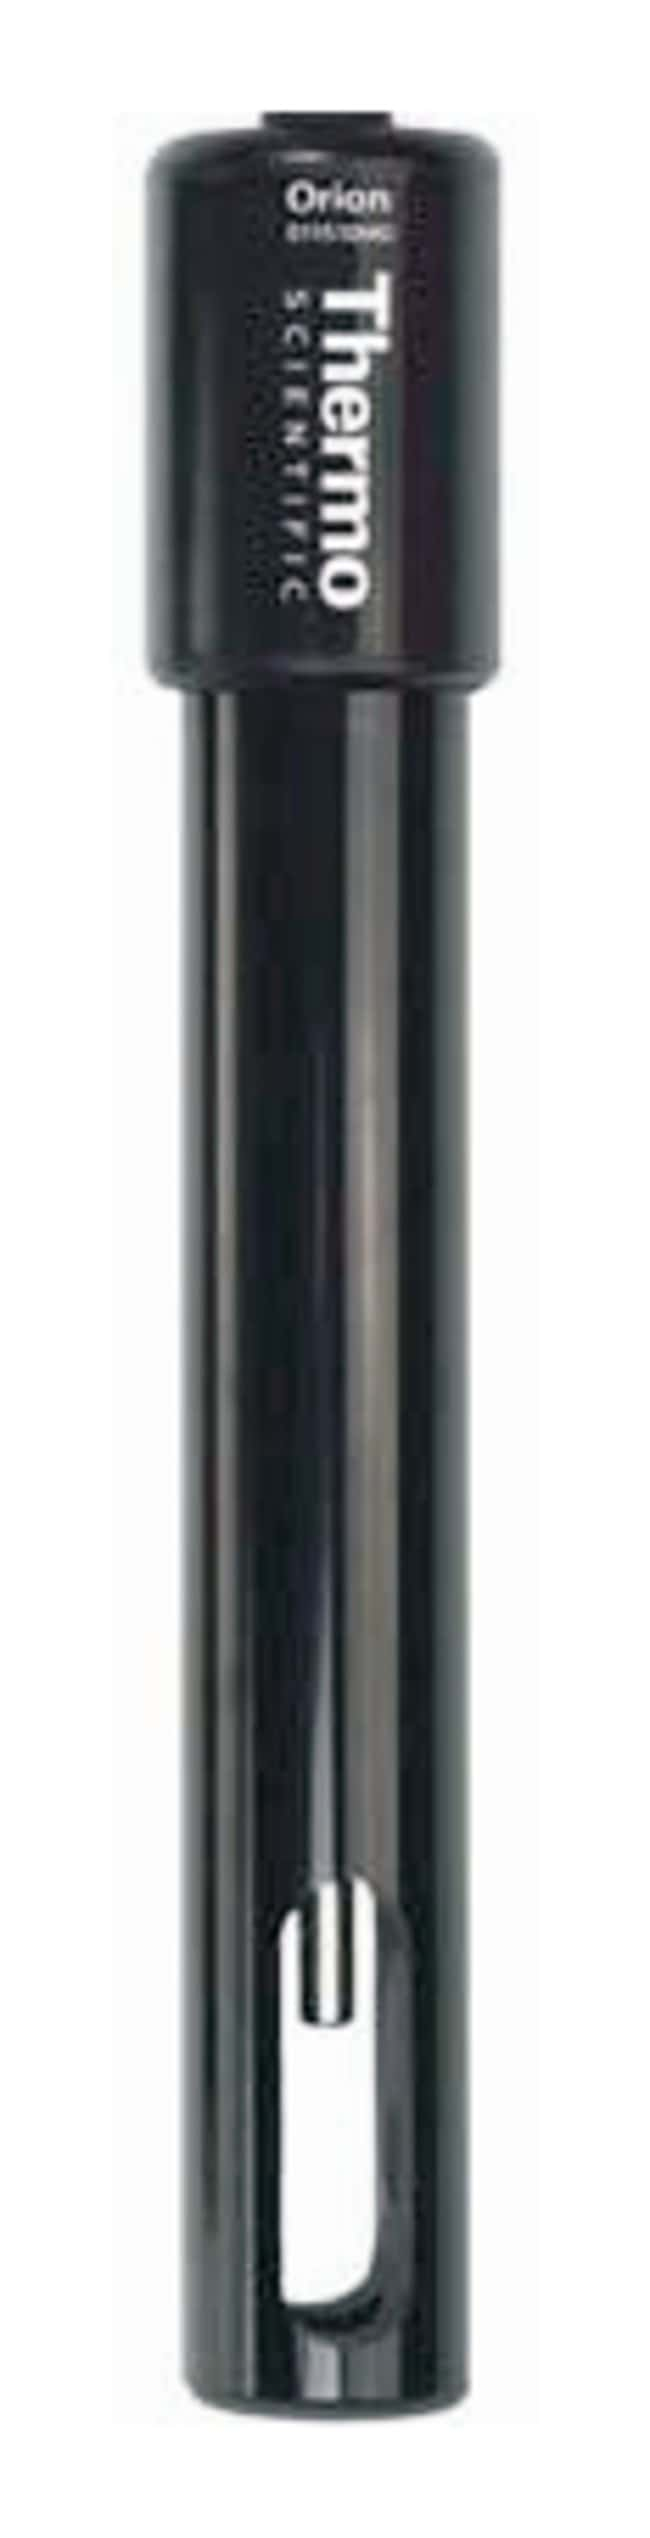 Thermo Scientific Orion 2-Electrode Conductivity Cells:Thermometers, pH